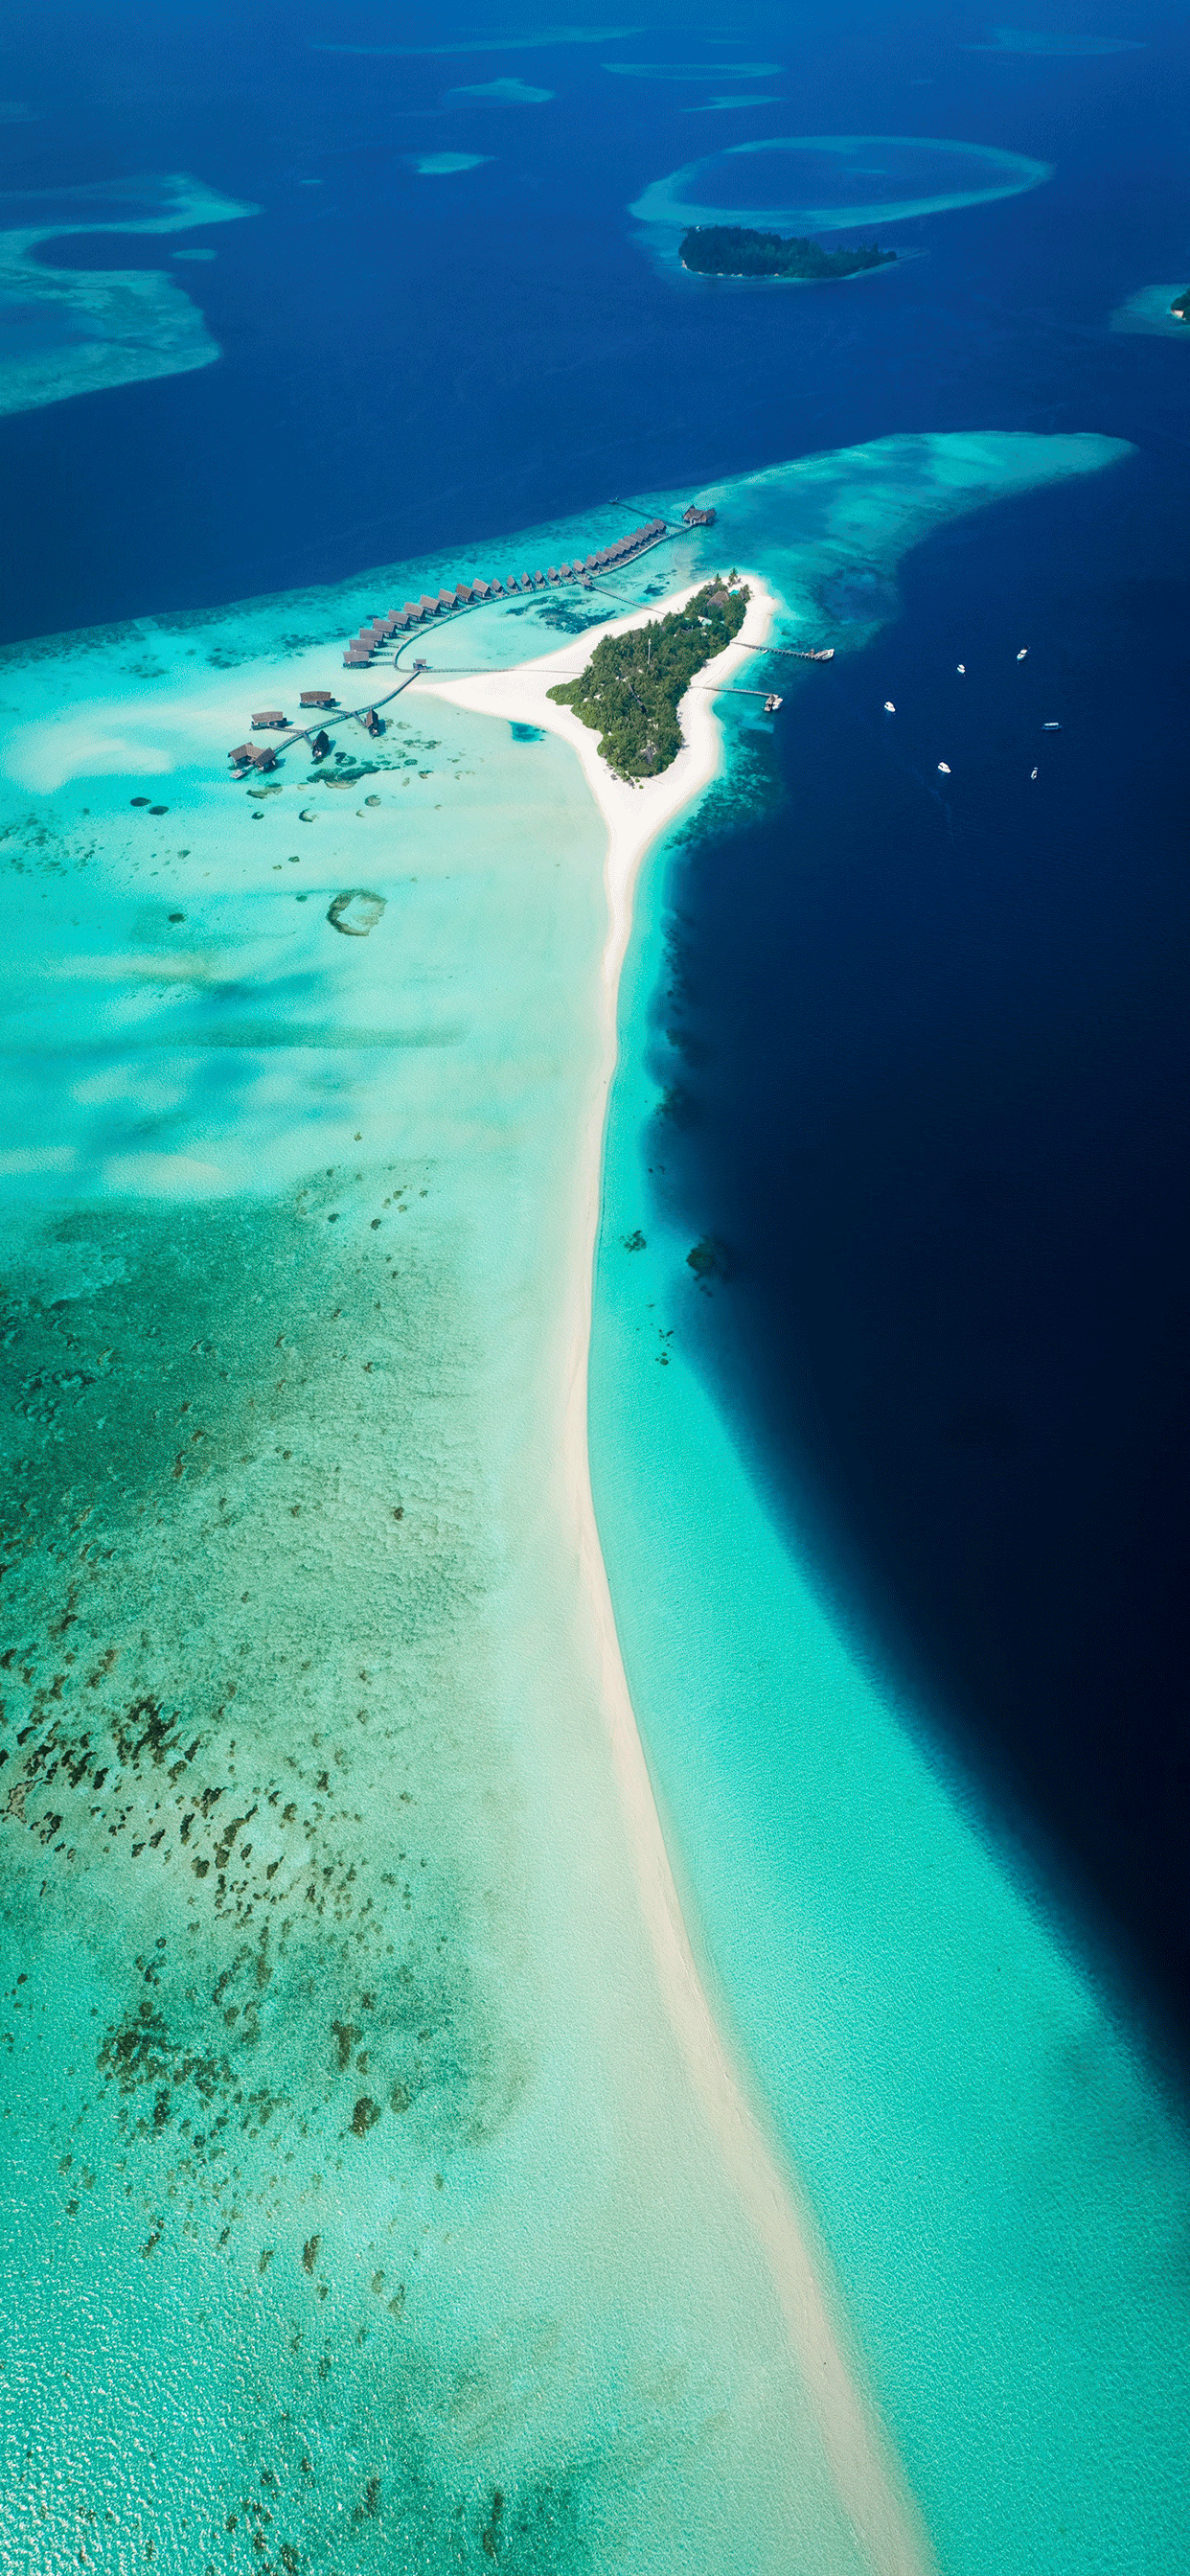 iPhone wallpapers maldives cocoa island Fonds d'écran iPhone du 19/07/2019